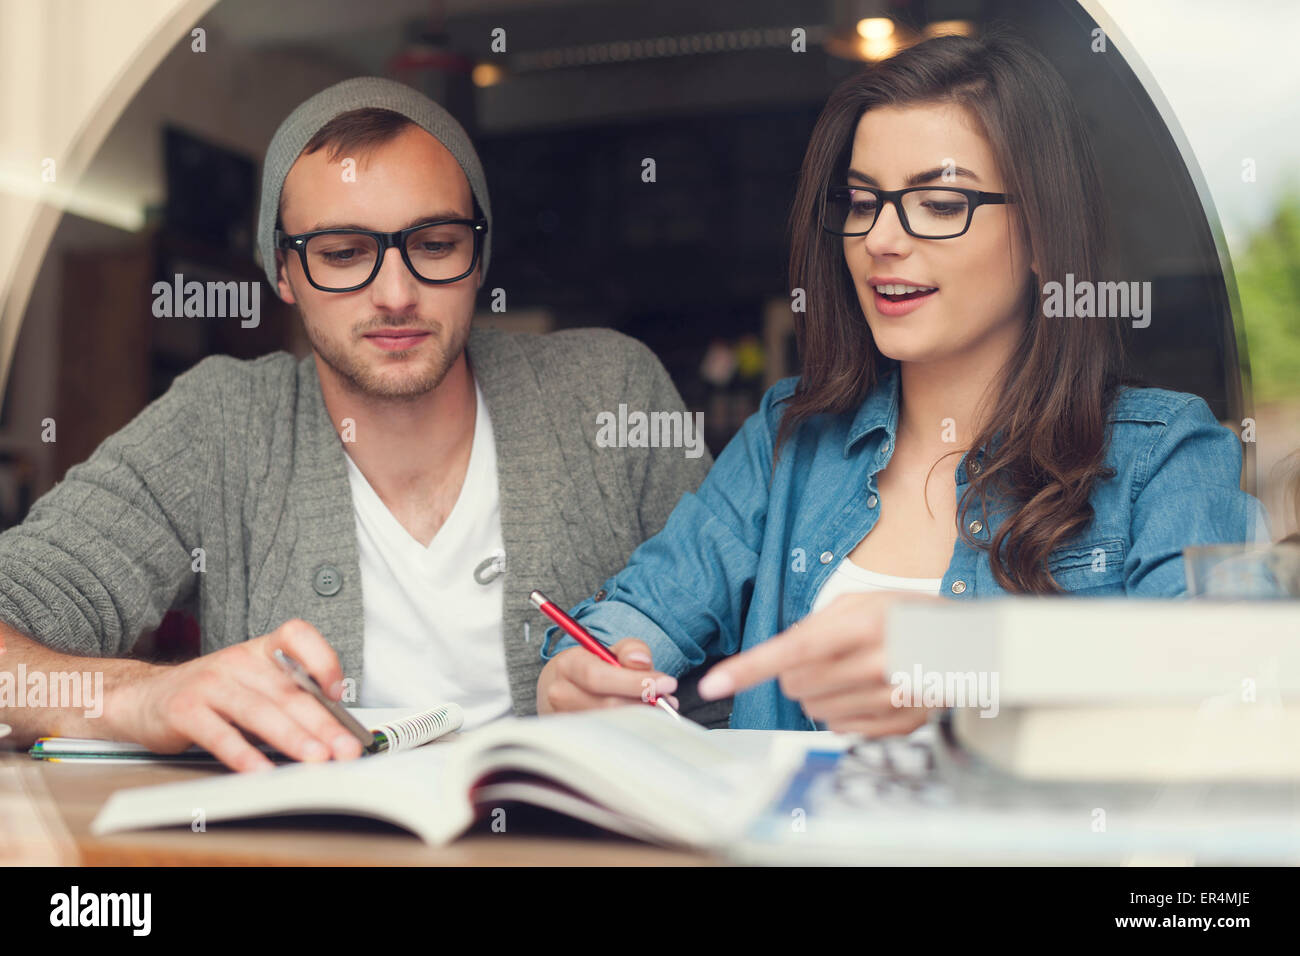 Hipster young couple studying together at cafe. Krakow, Poland - Stock Image